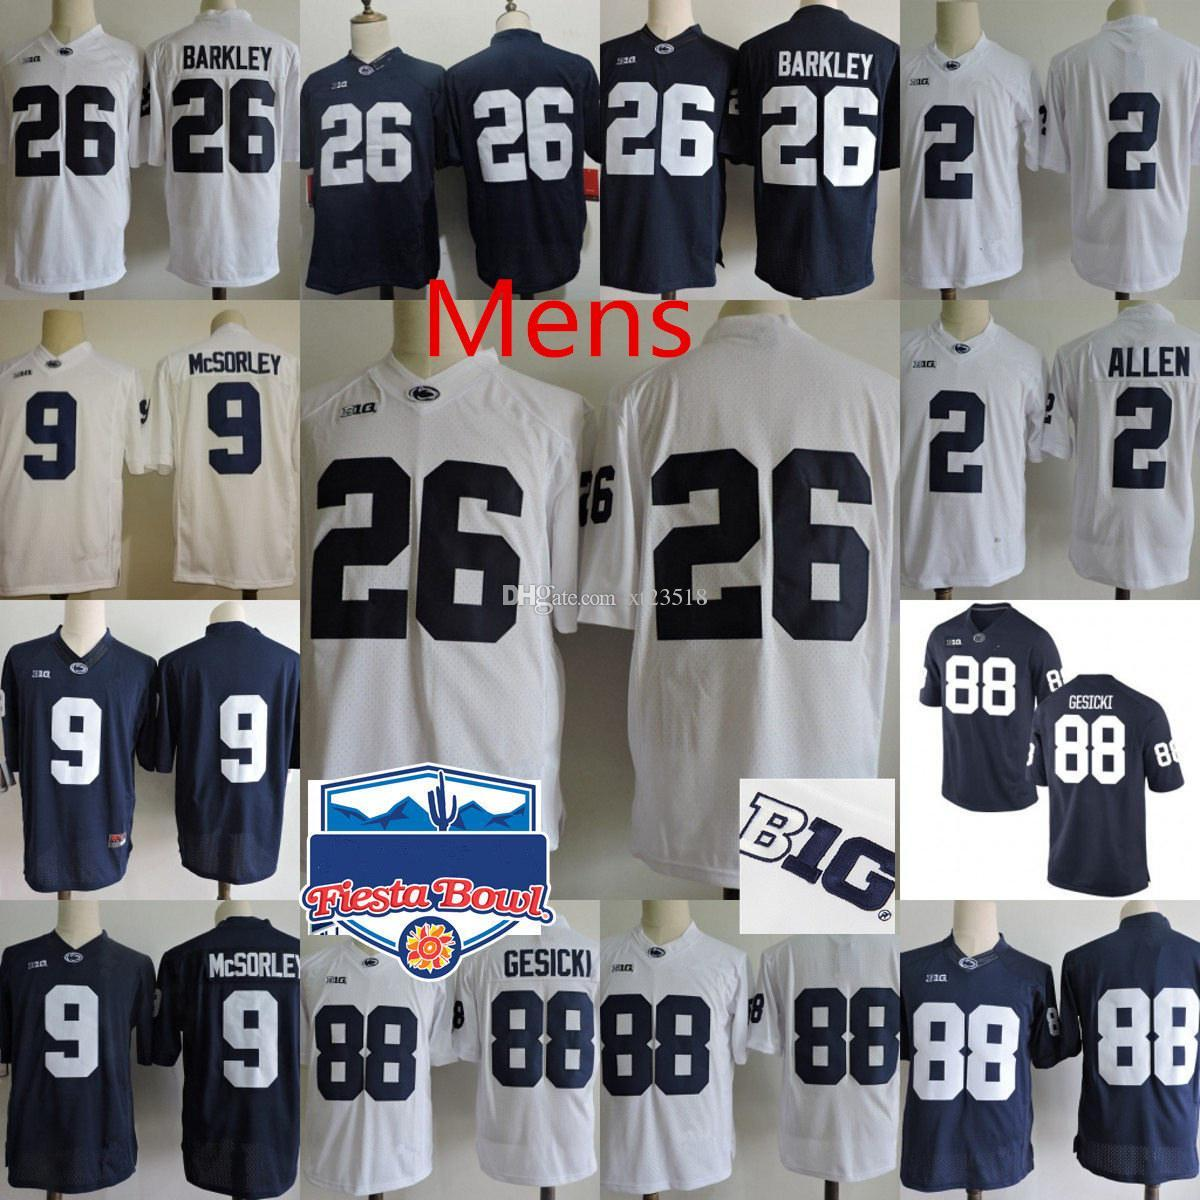 the latest 0c824 0c5f1 Mens Penn State Nittany Lions Marcus Allen College Football Jerseys NCAA 26  Saquon Barkley 9 TRACE McSORLEY 88 Mike Gesicki PSU Lions Jersey